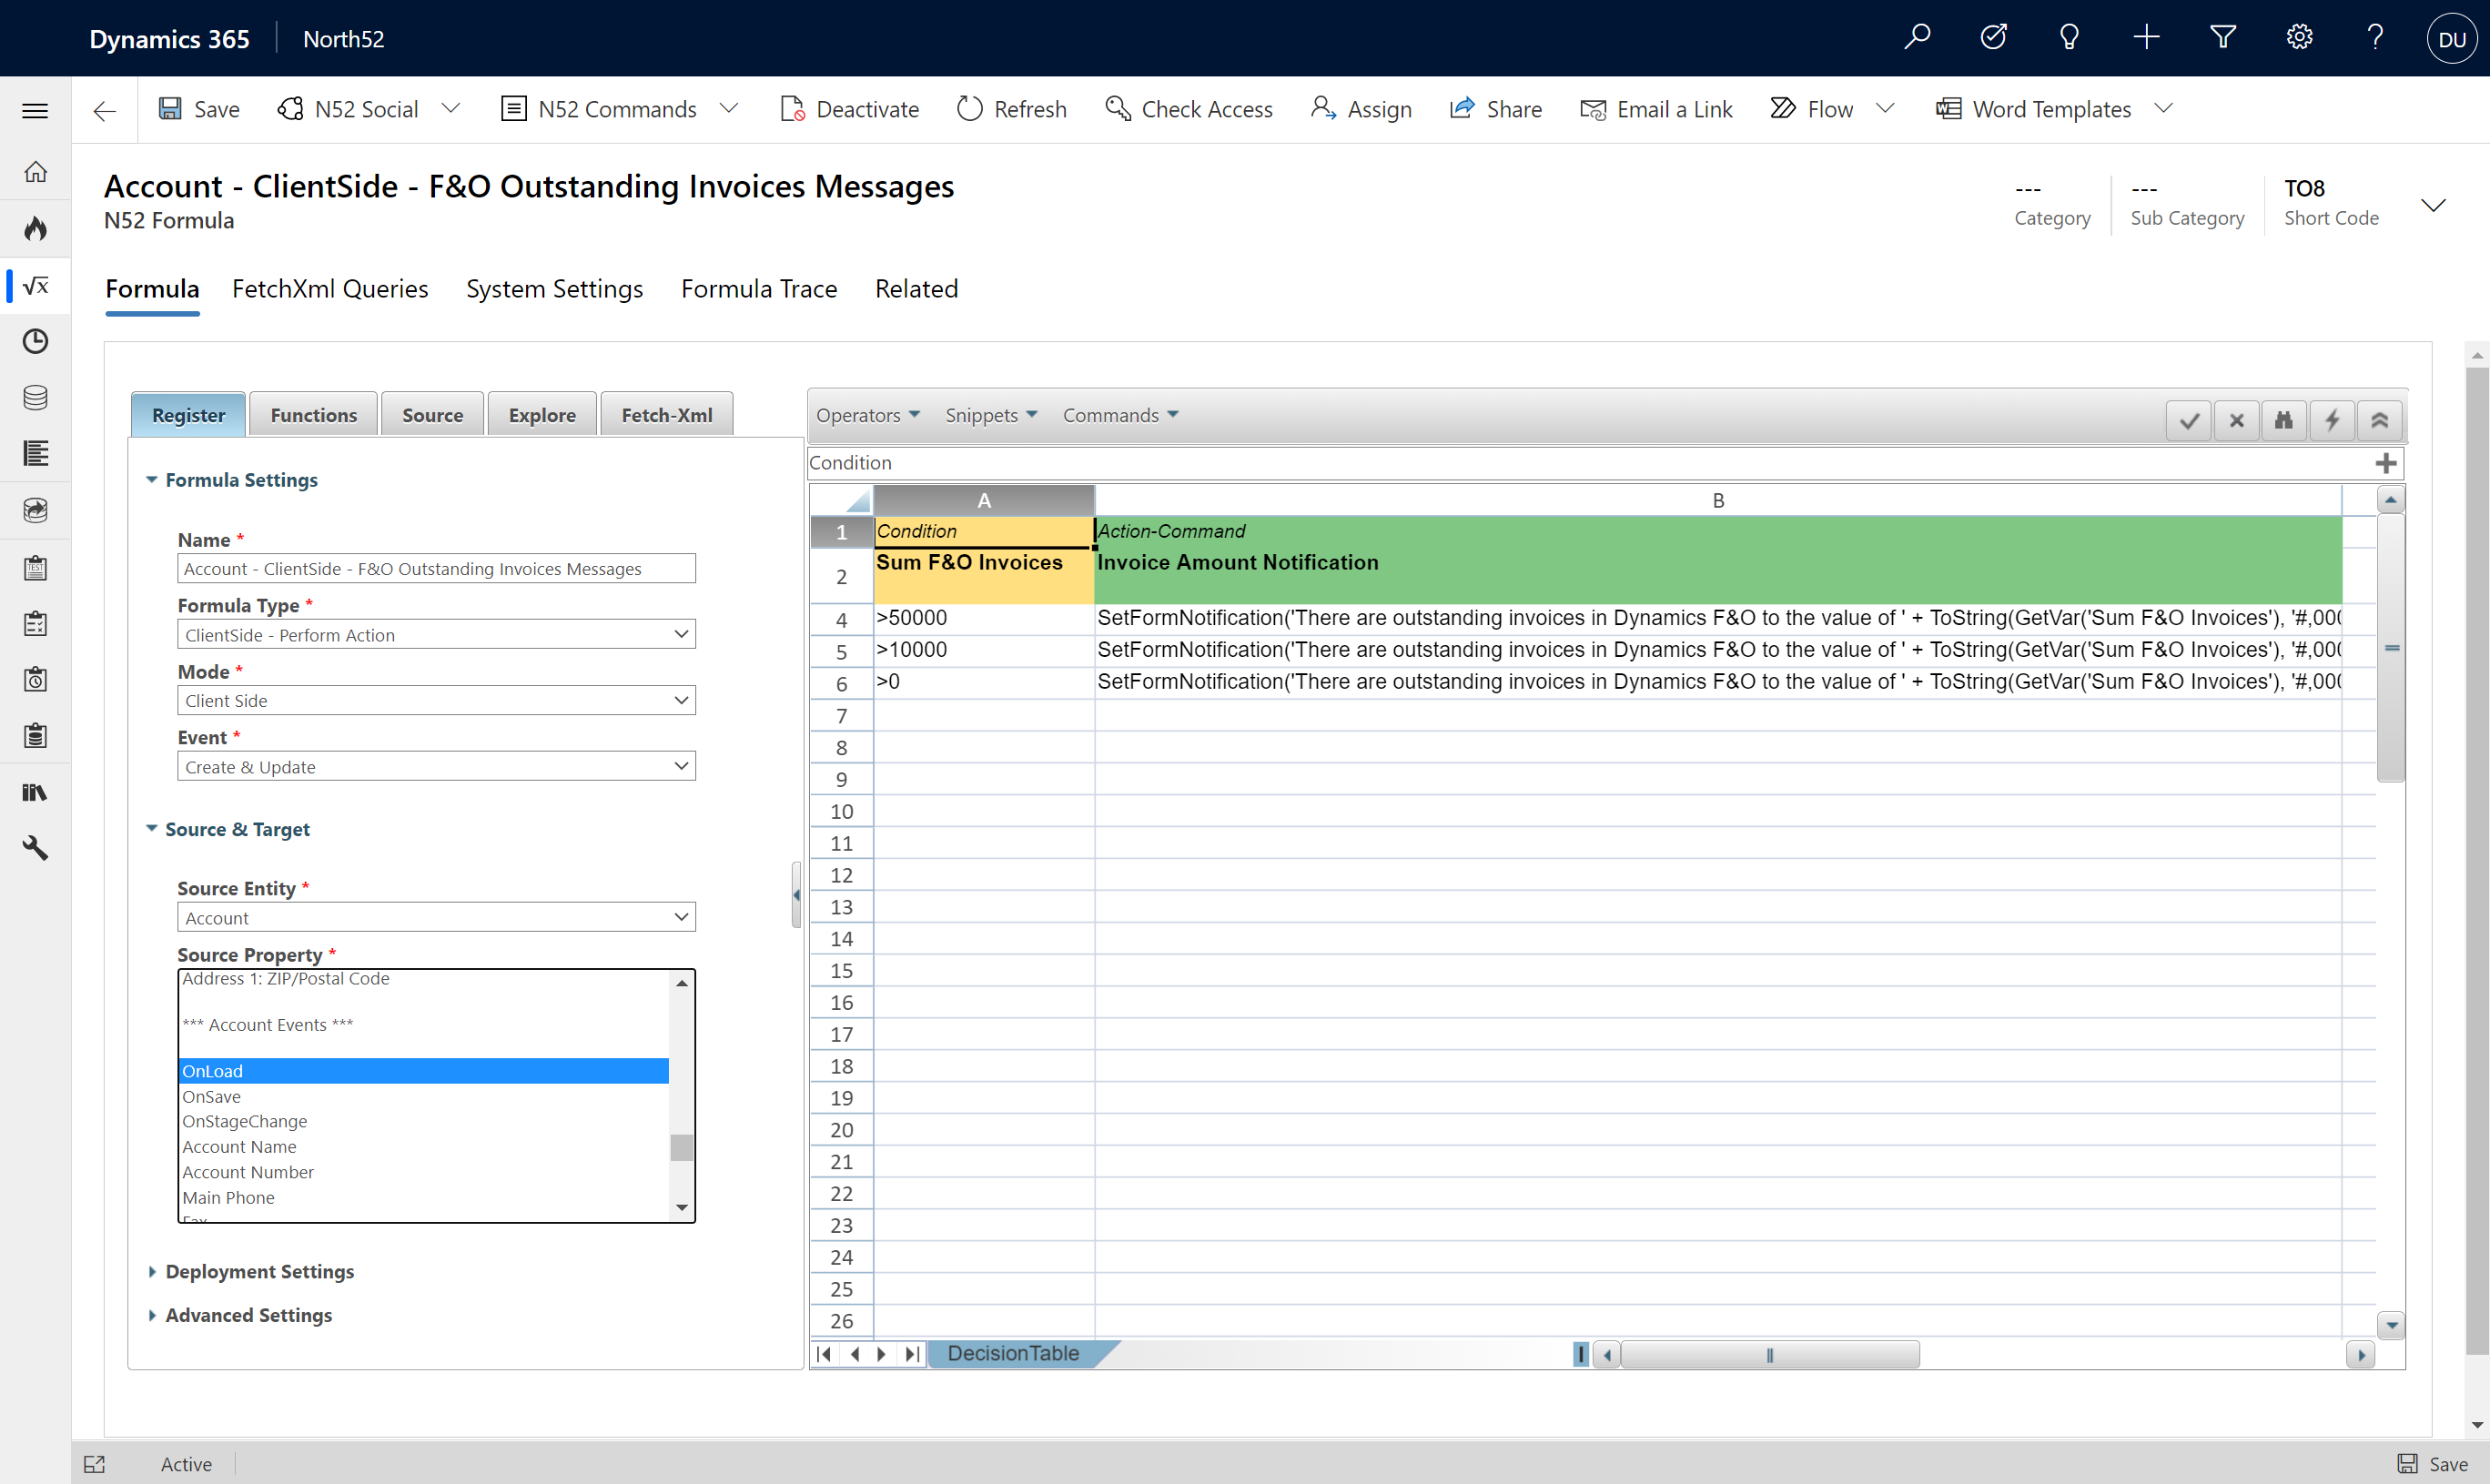 Finance And Operations Virtual Entity Integration - Decision Table - Outstanding Invoices